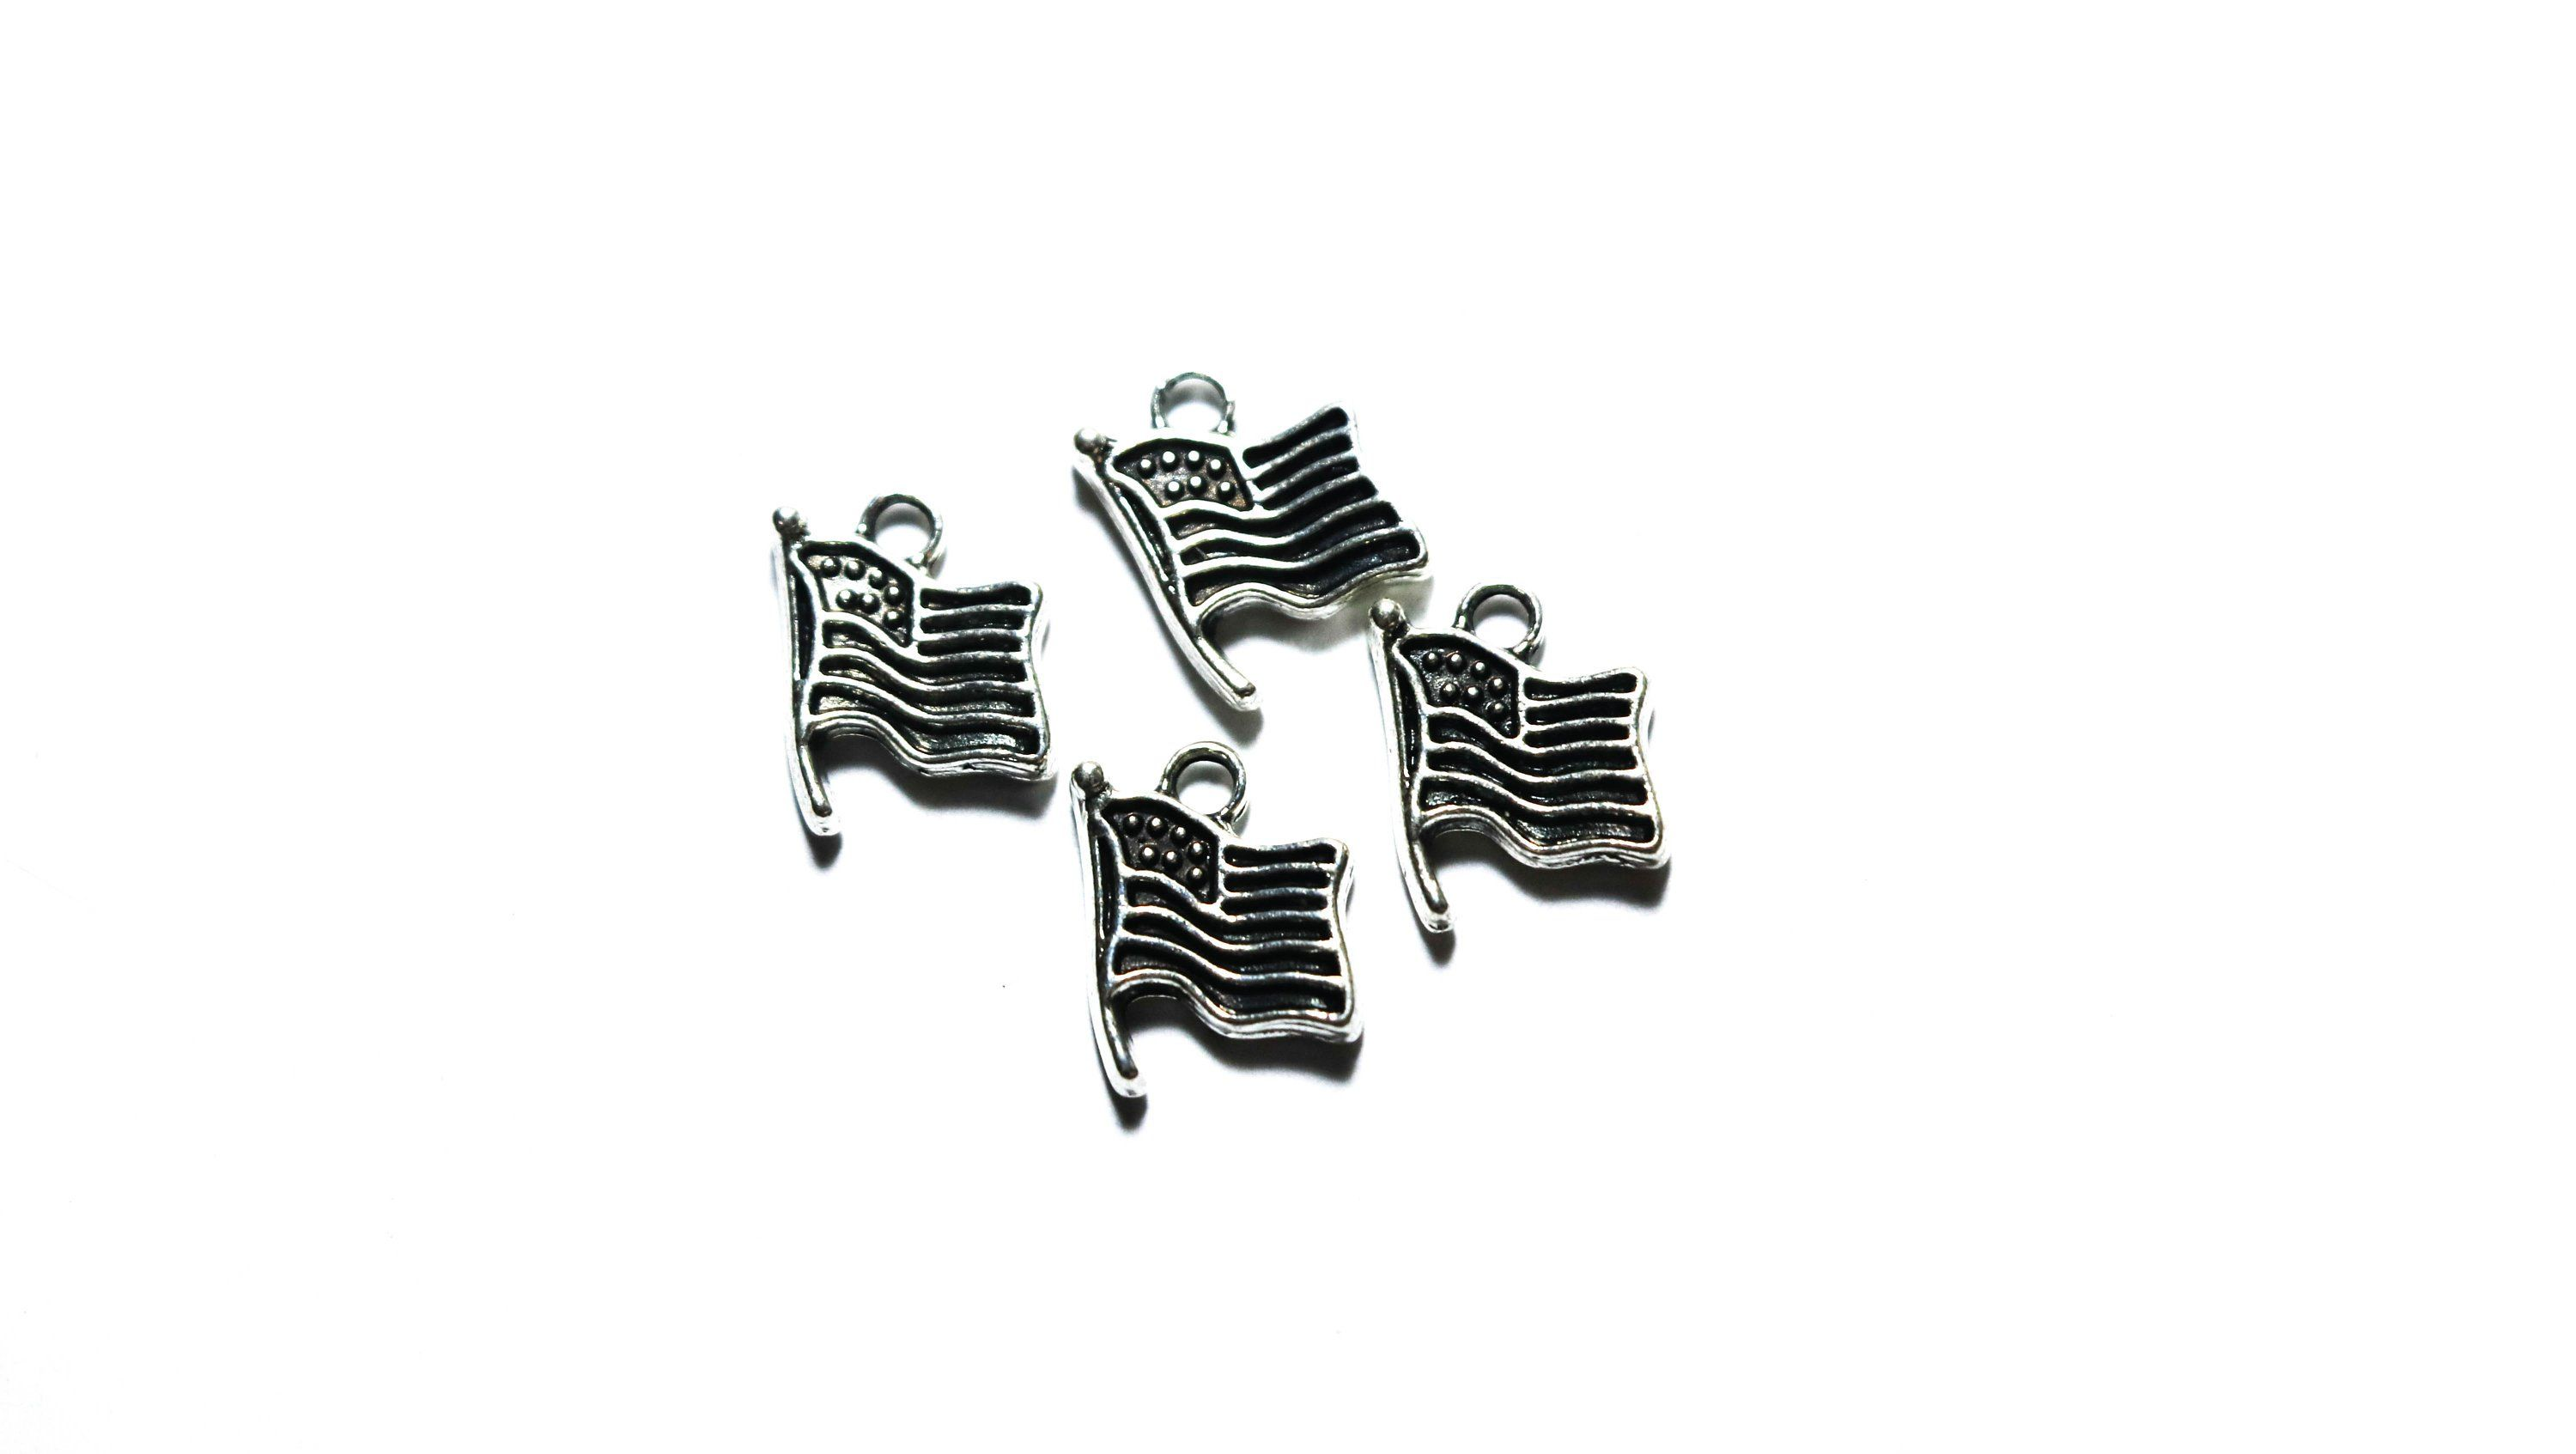 Flag Tibetan Silver Flag Charm Charms Findings Jewelry Supply Diy Pendant American Flag American Flag Pendant Flag Charm Jewelry Supplies Jewelry Making Jewelry